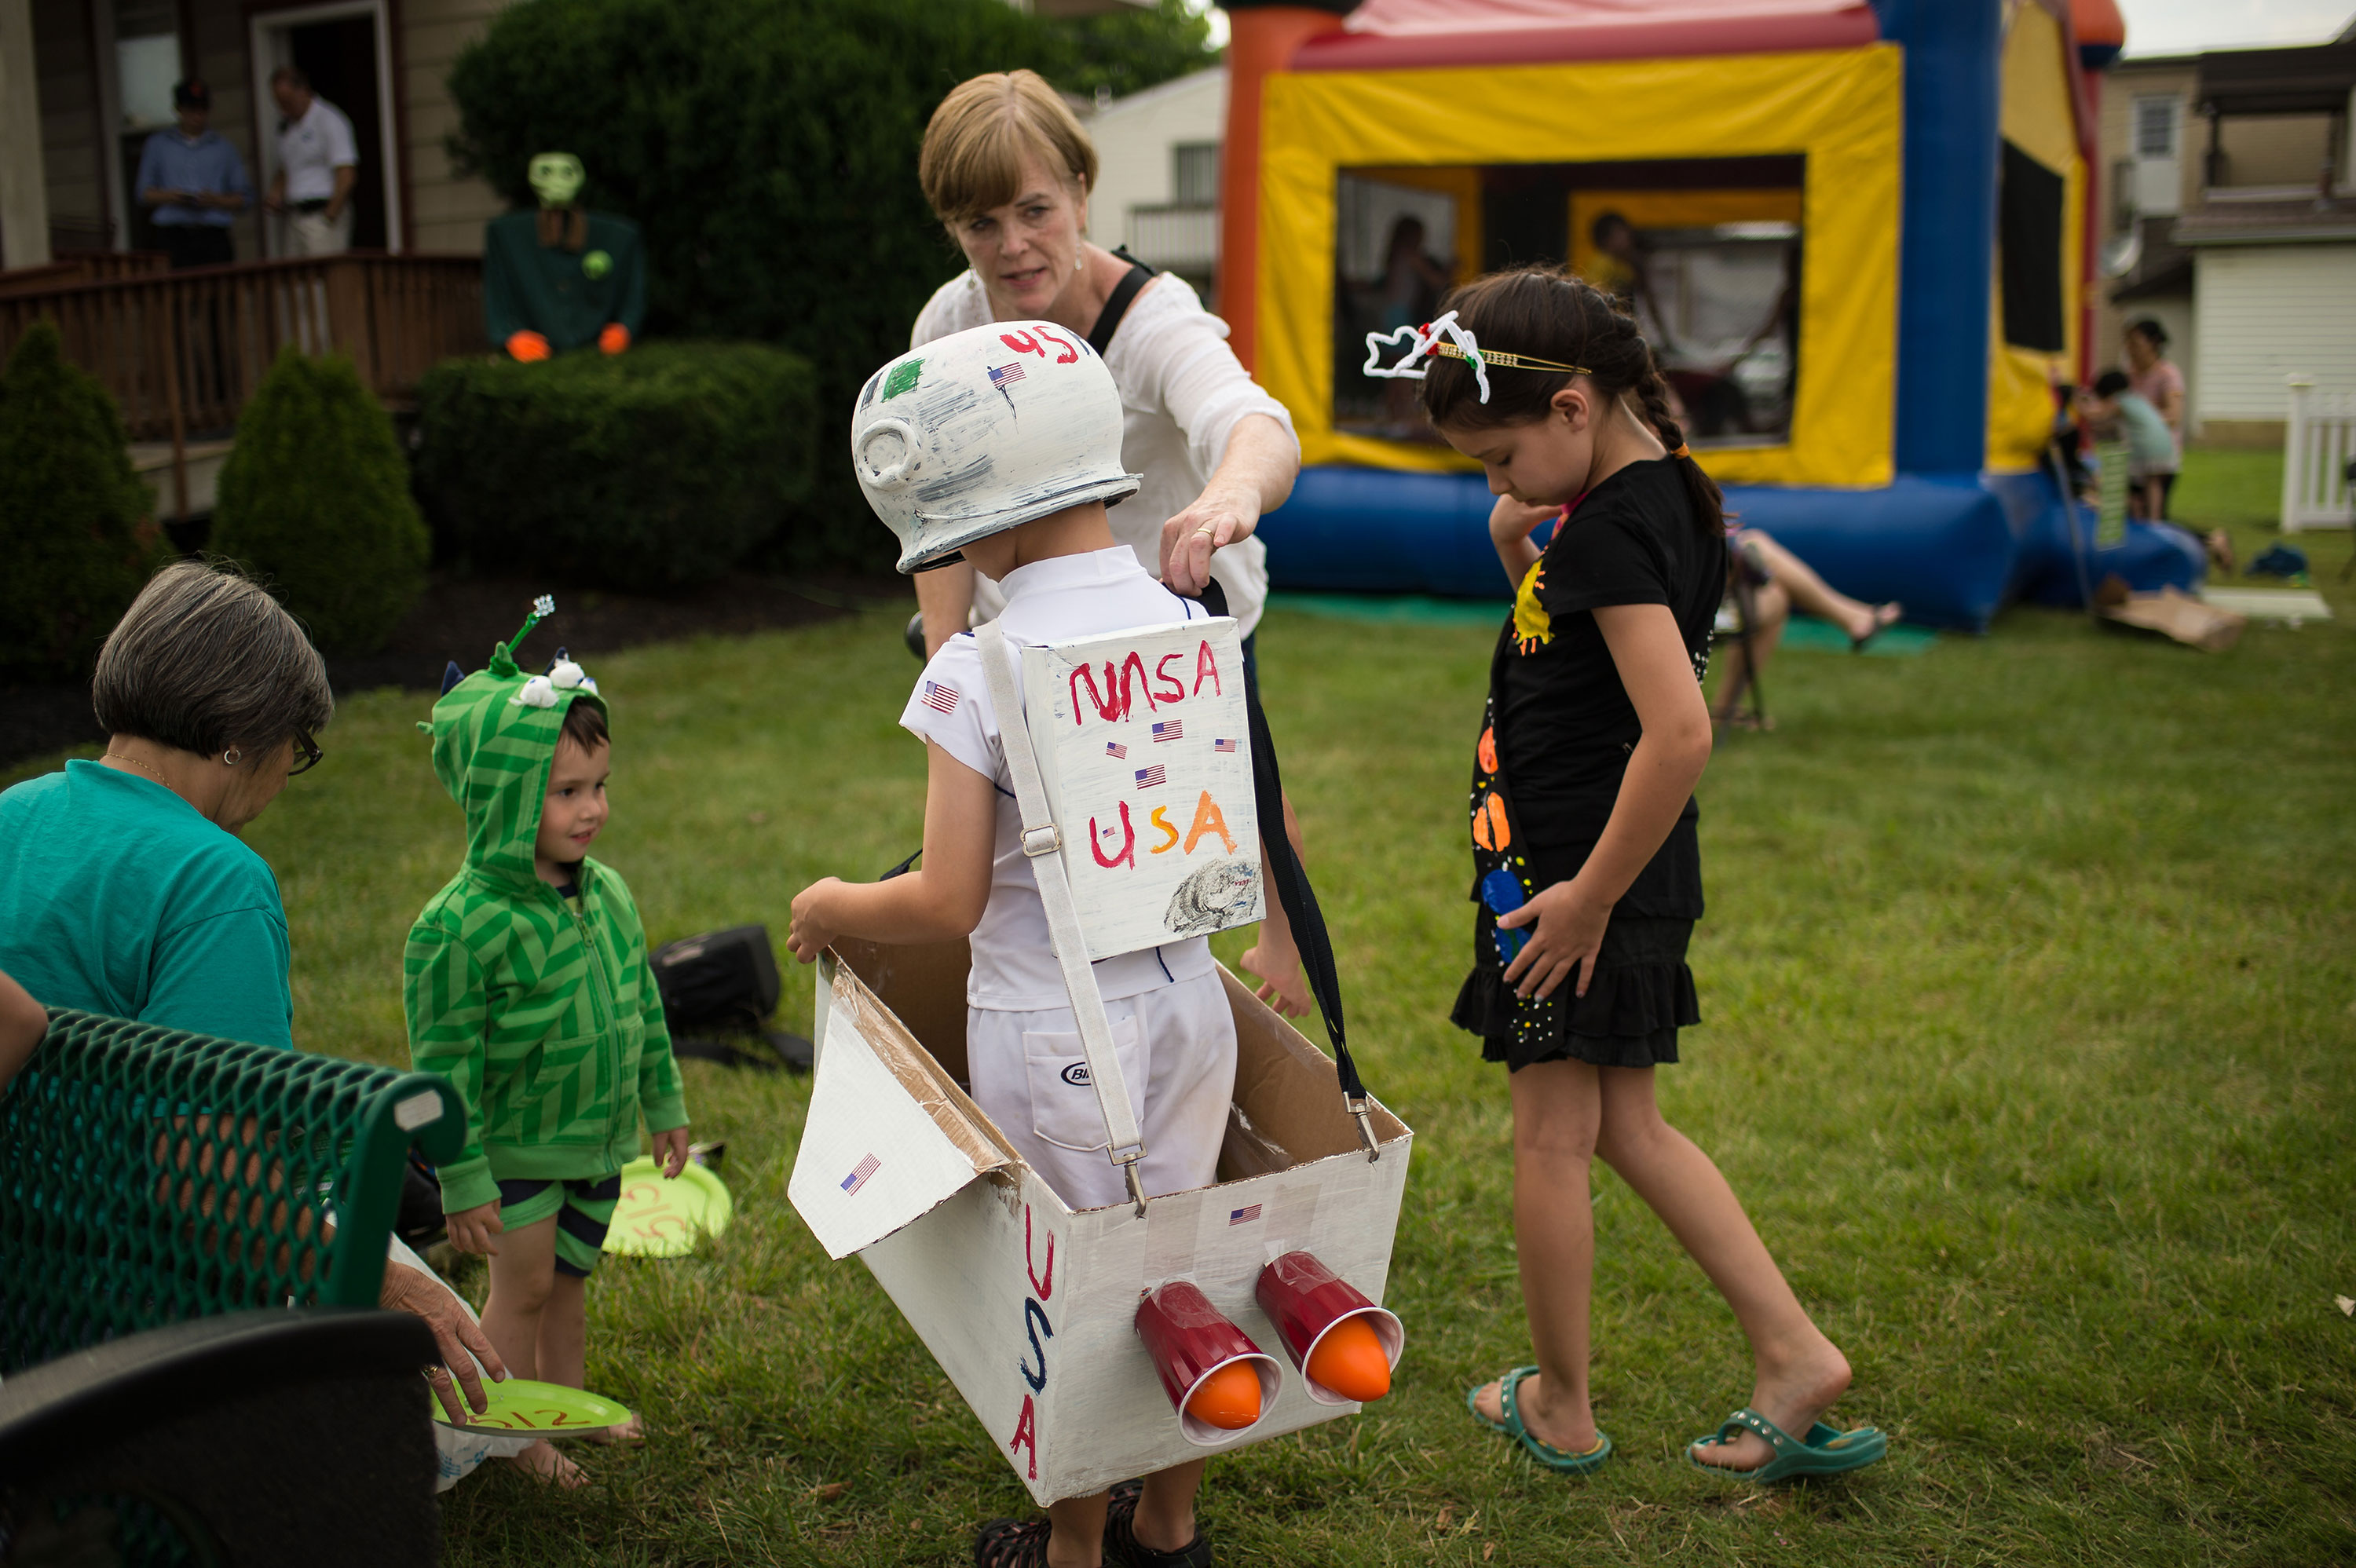 There were plenty of space-themed outfits at the Mars New Year's celebration Friday, June 19, 2015, in Mars, Pennsylvania. Credit: NASA/Bill Ingalls